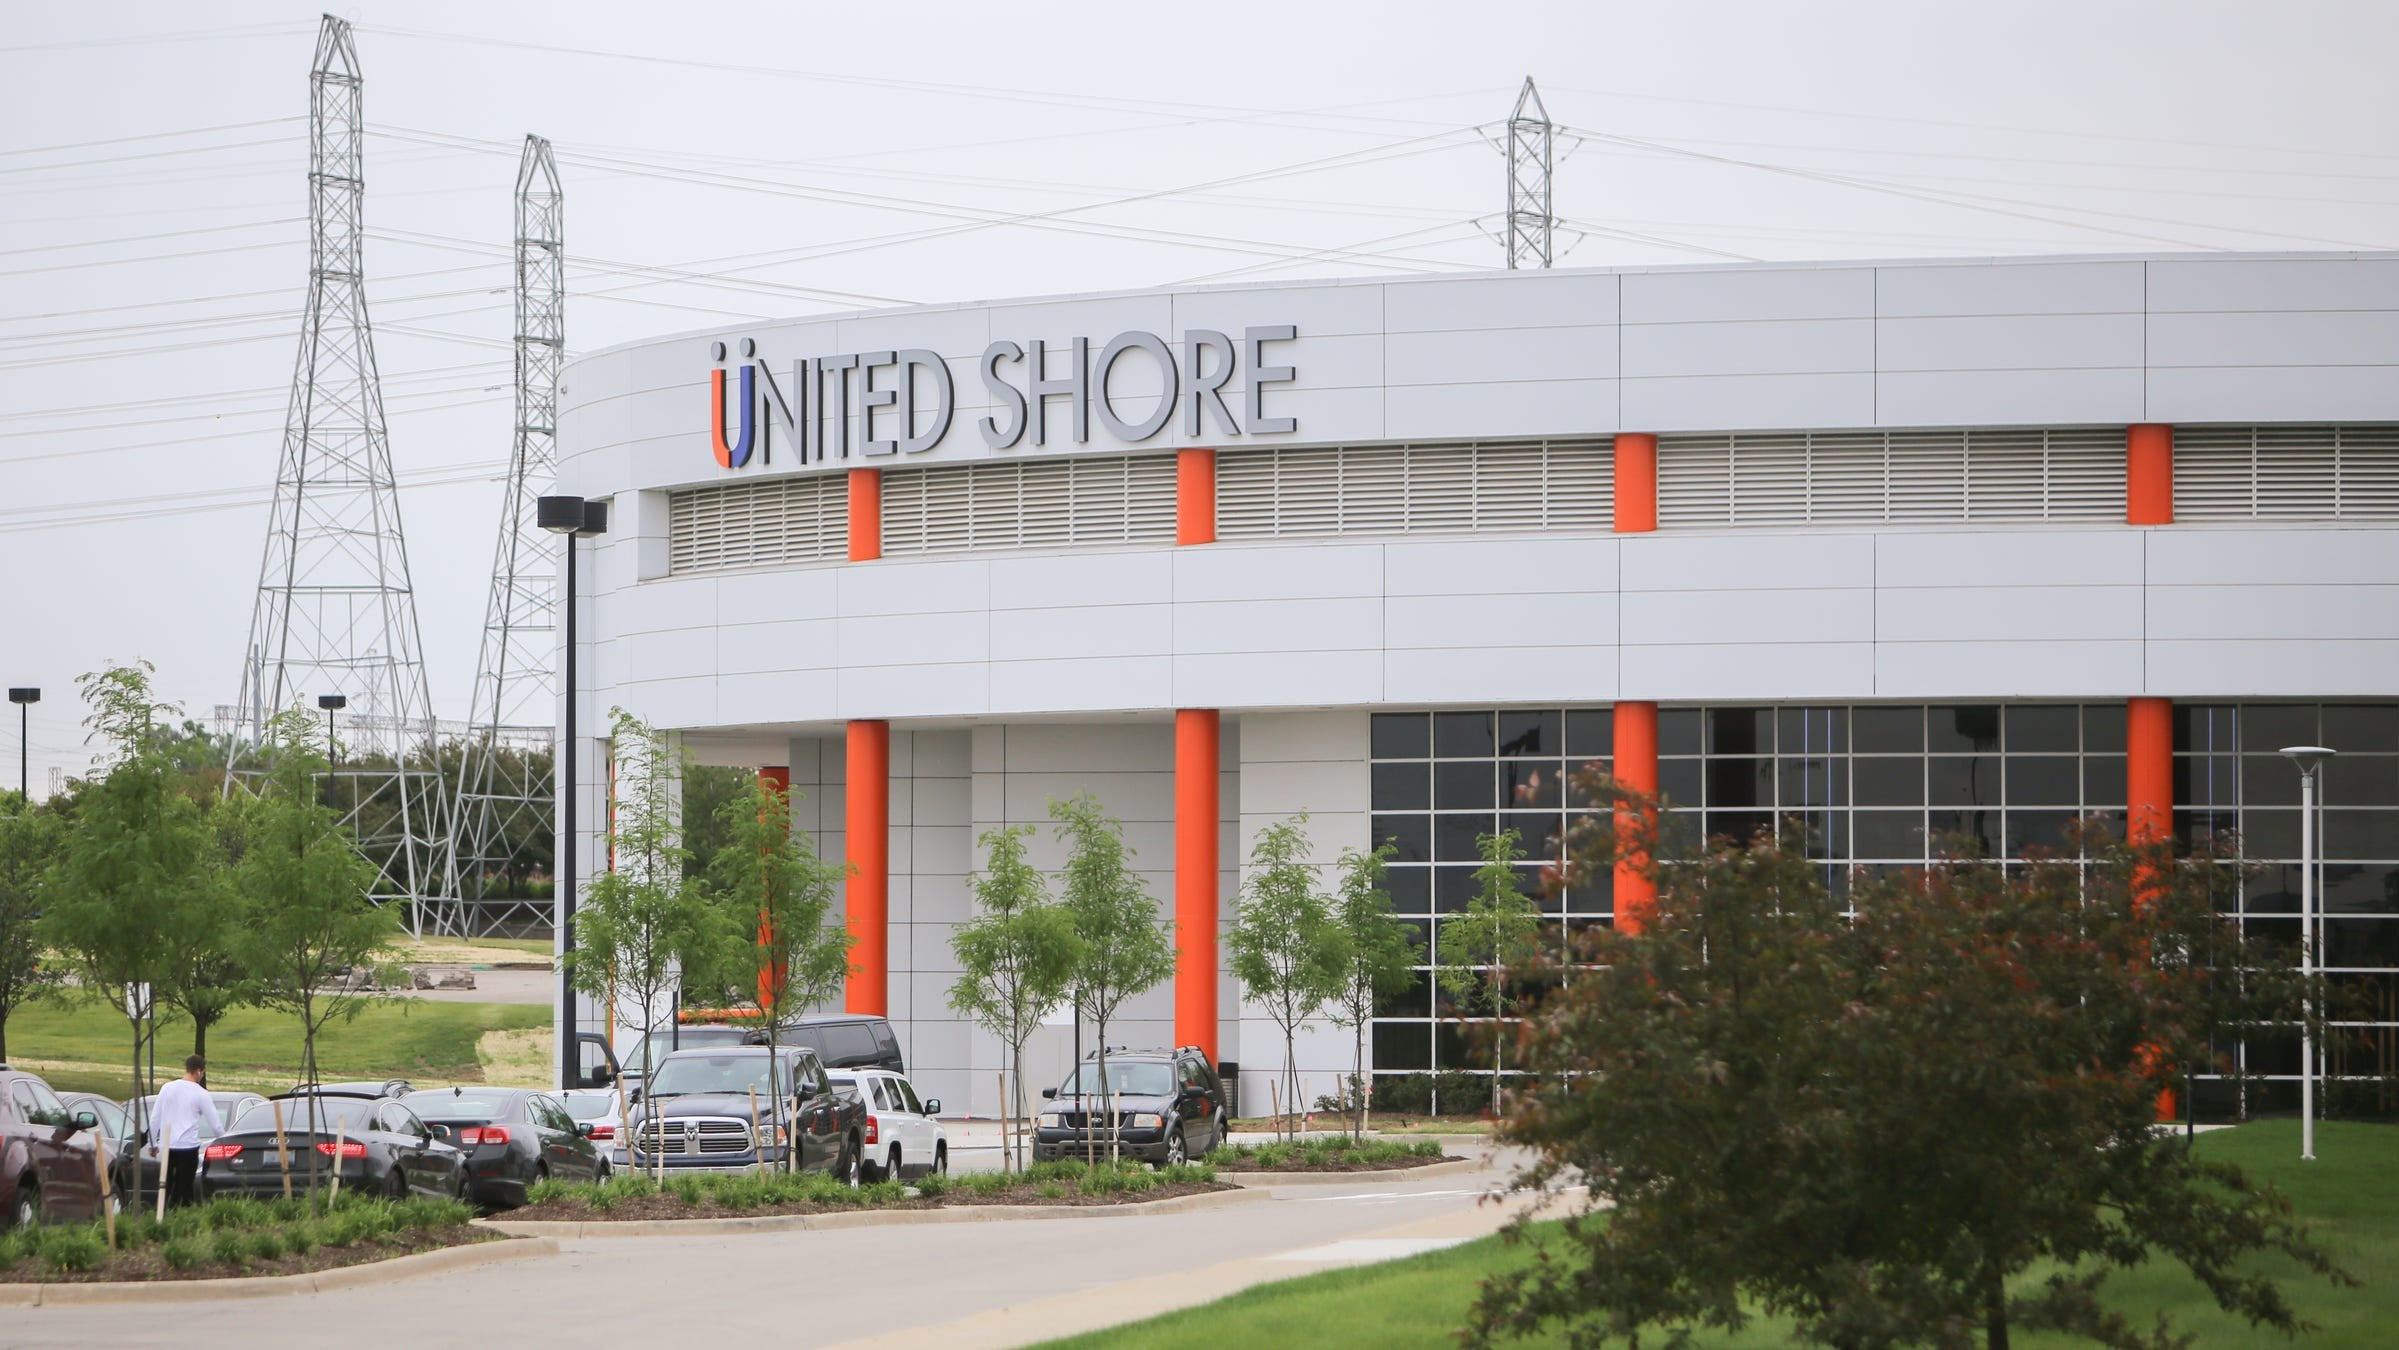 Pontiac's United Shore mortgage company has had 84 positive COVID-19 cases among workers : Michigan